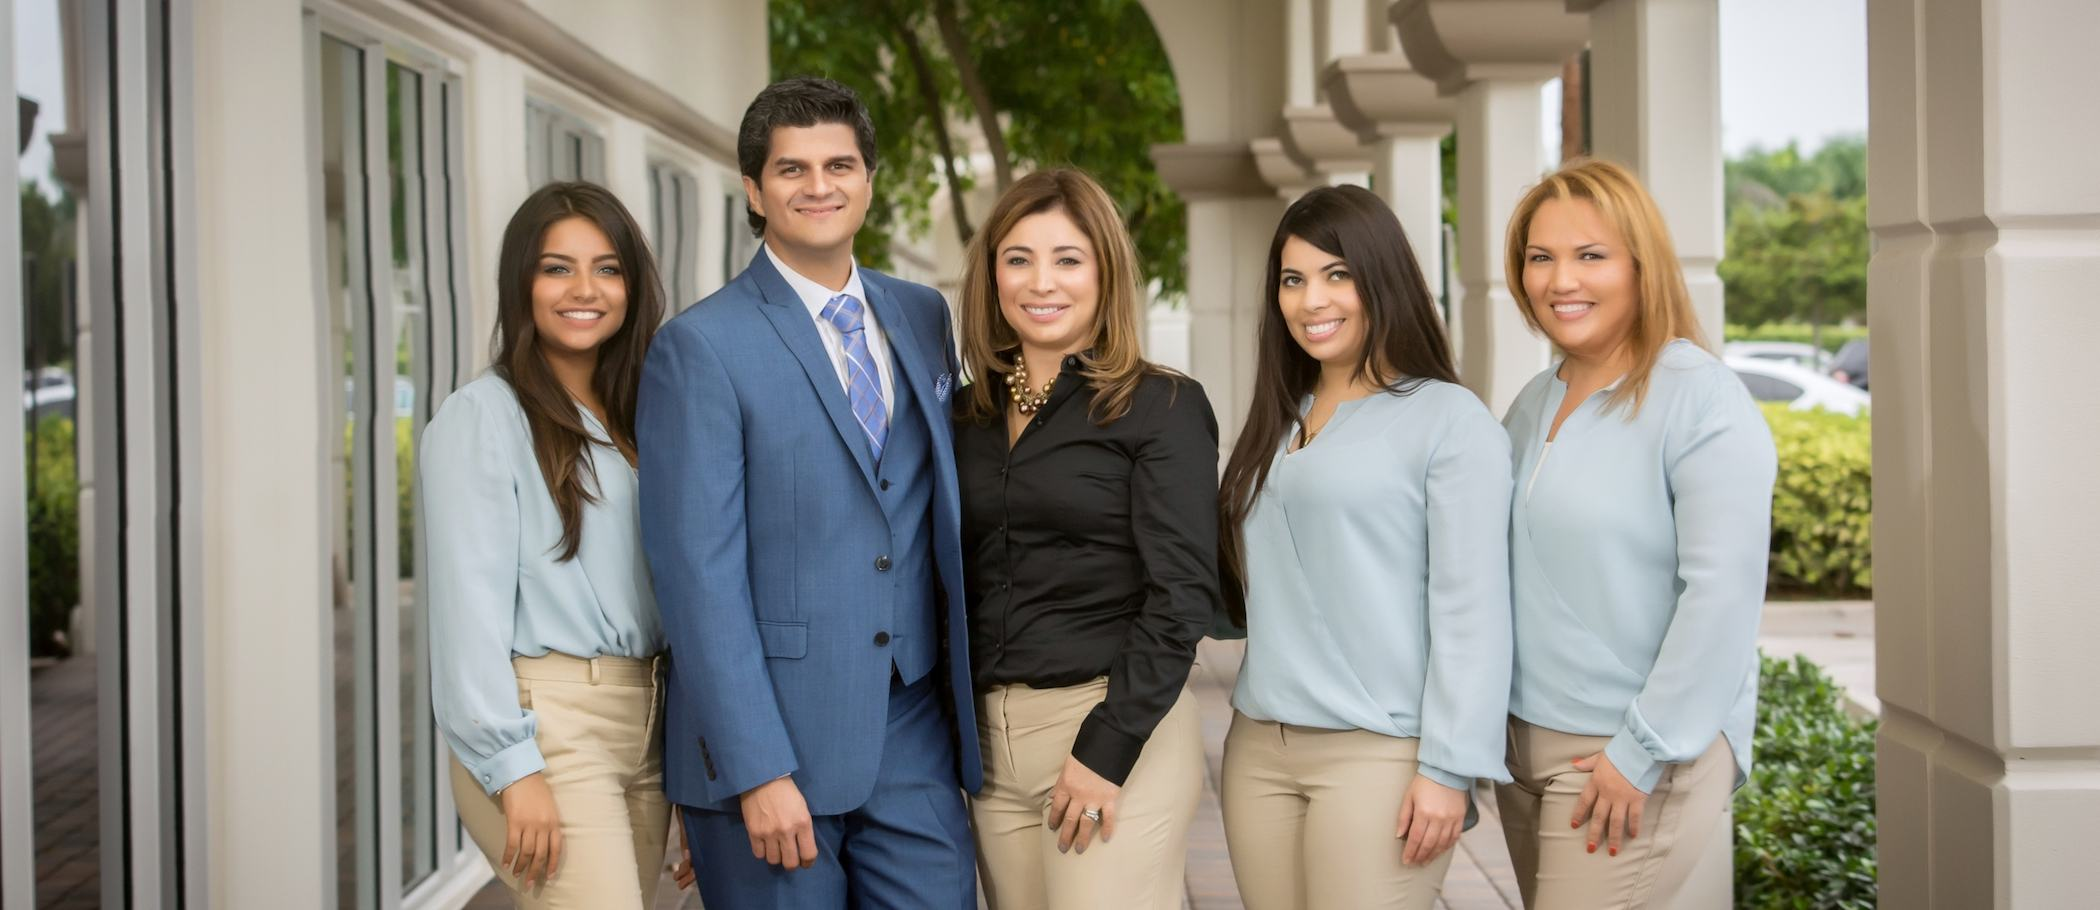 Natural Smile Dentistry Dentist In Palm Beach Gardens